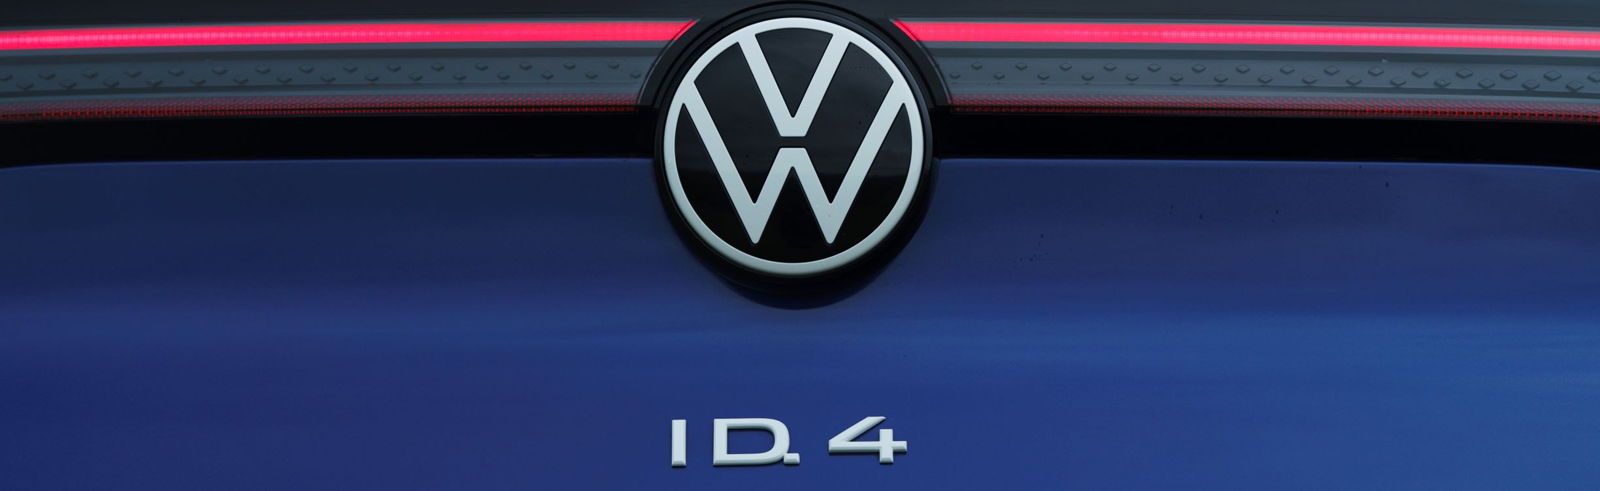 Volkswagen UK expands the ID.4 range with two new motors and a 52 kWh battery